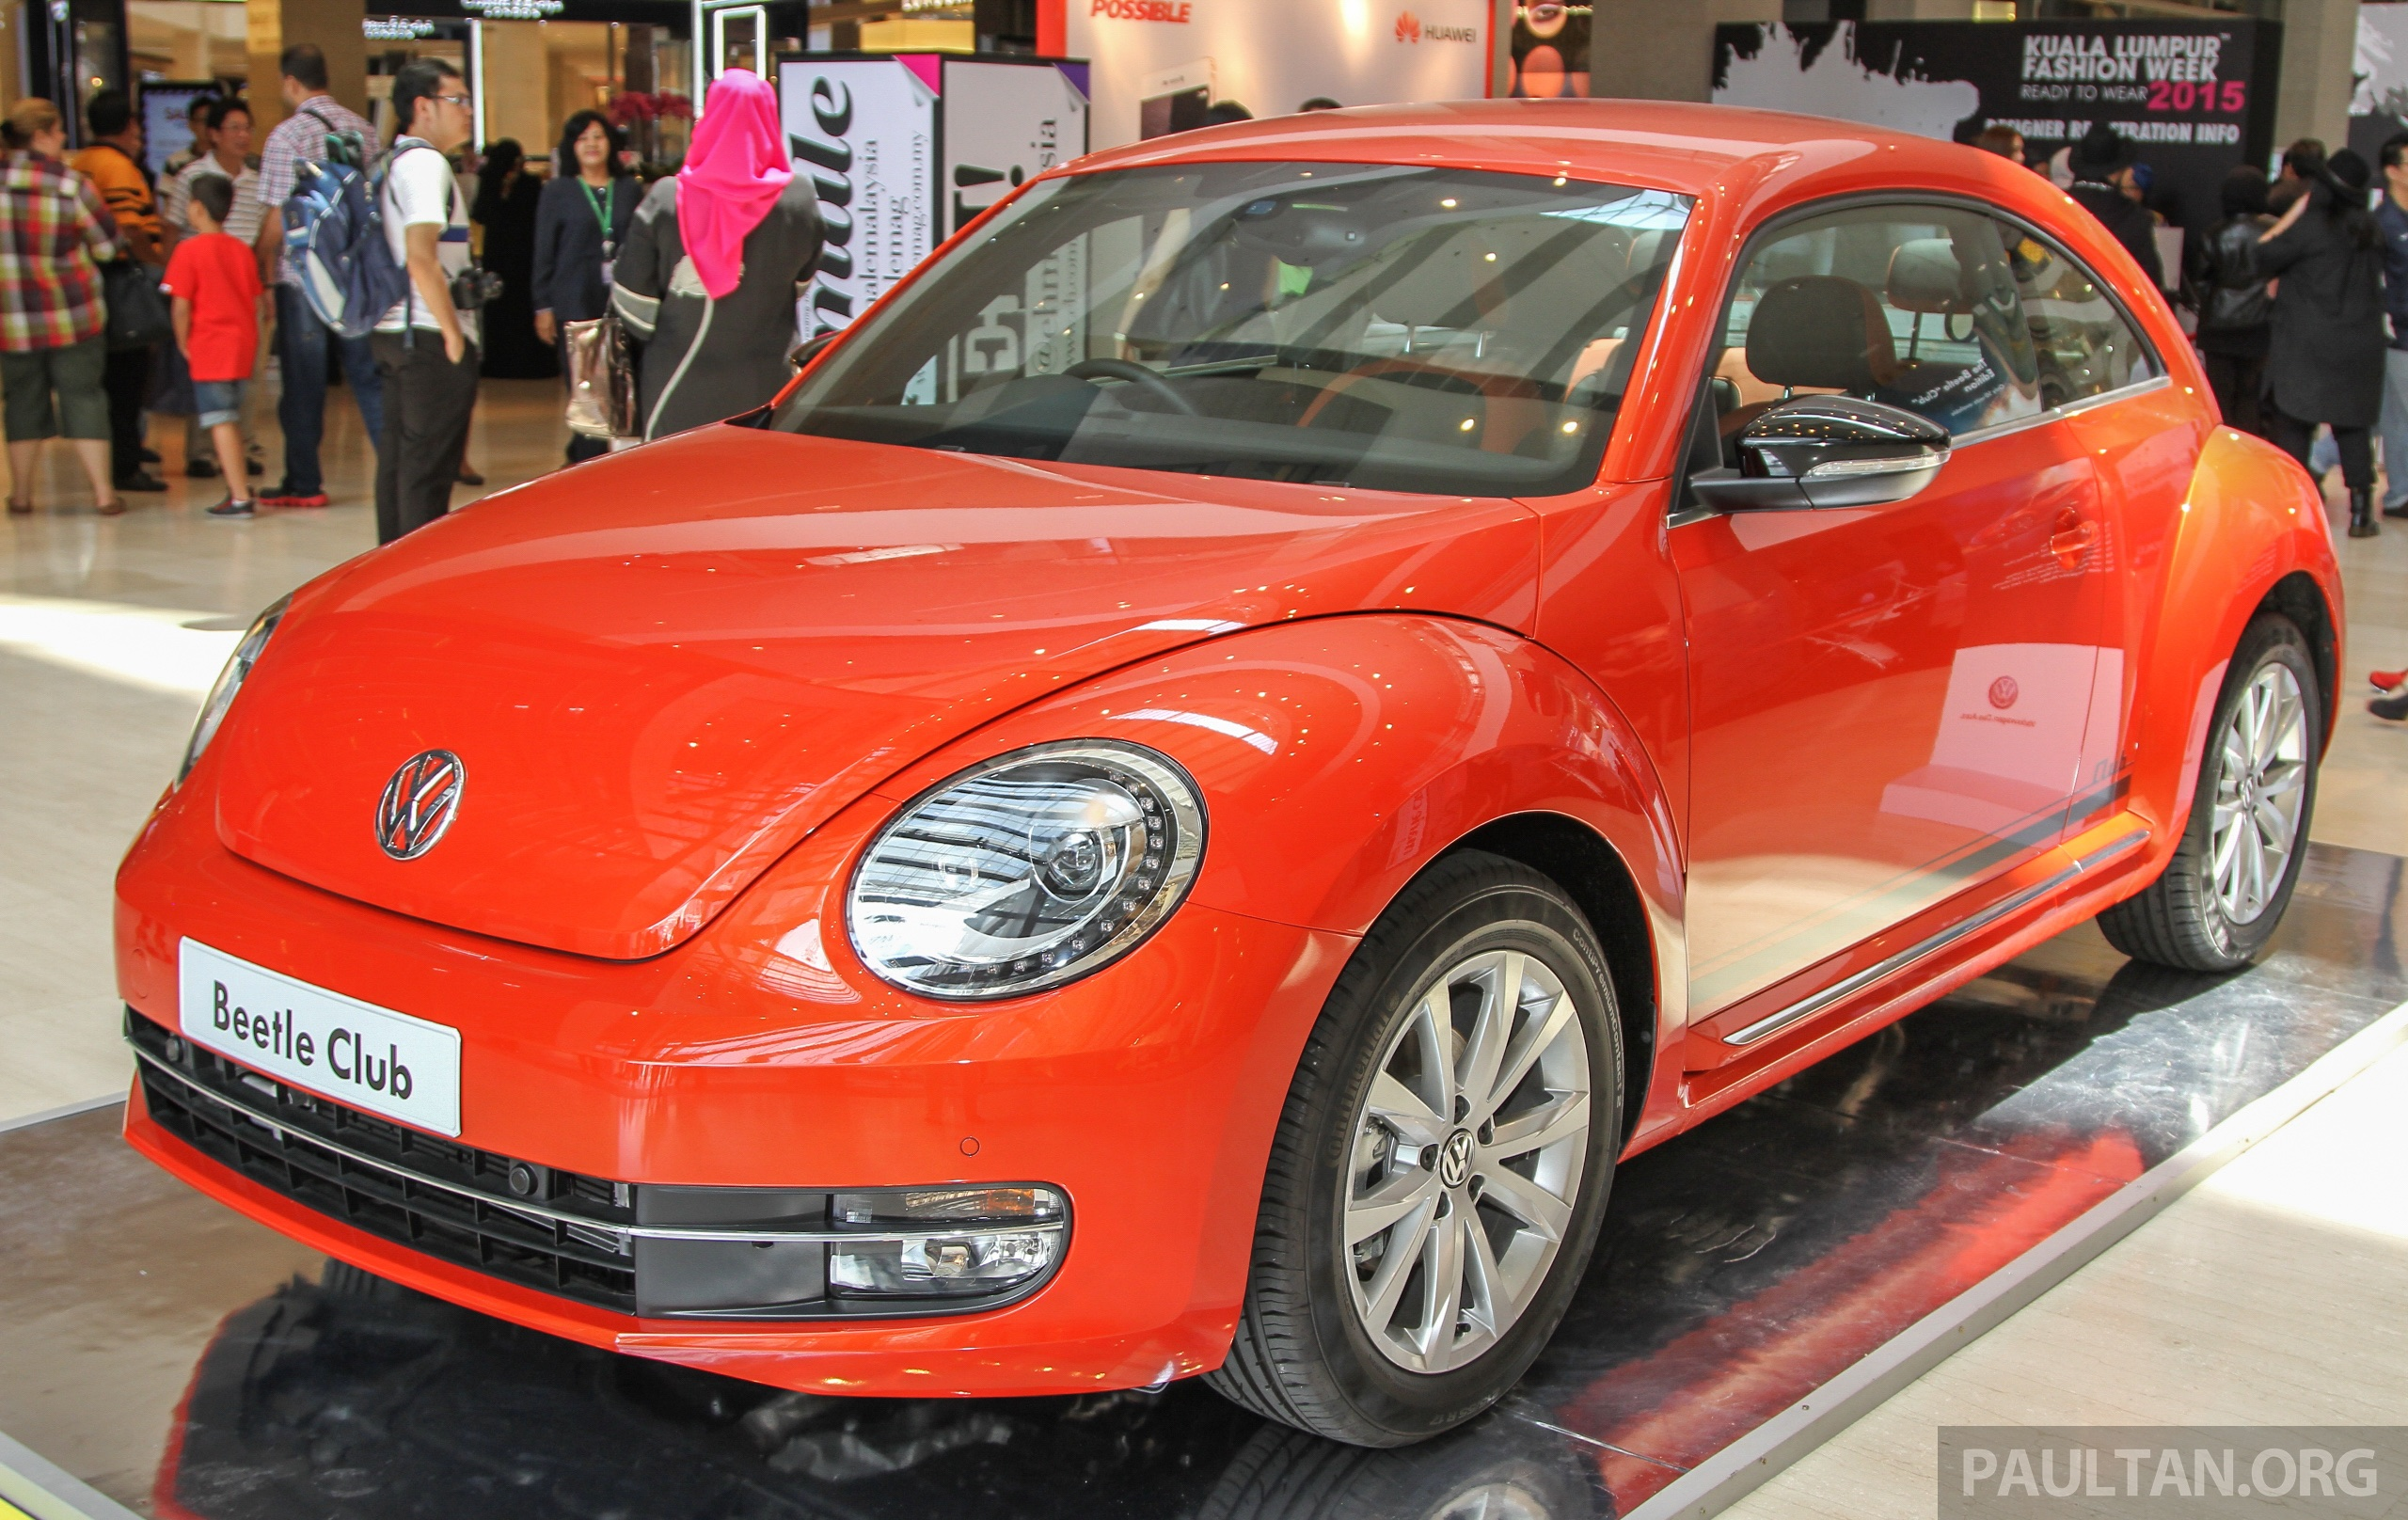 GALLERY: Volkswagen Beetle Club Edition - 50 units